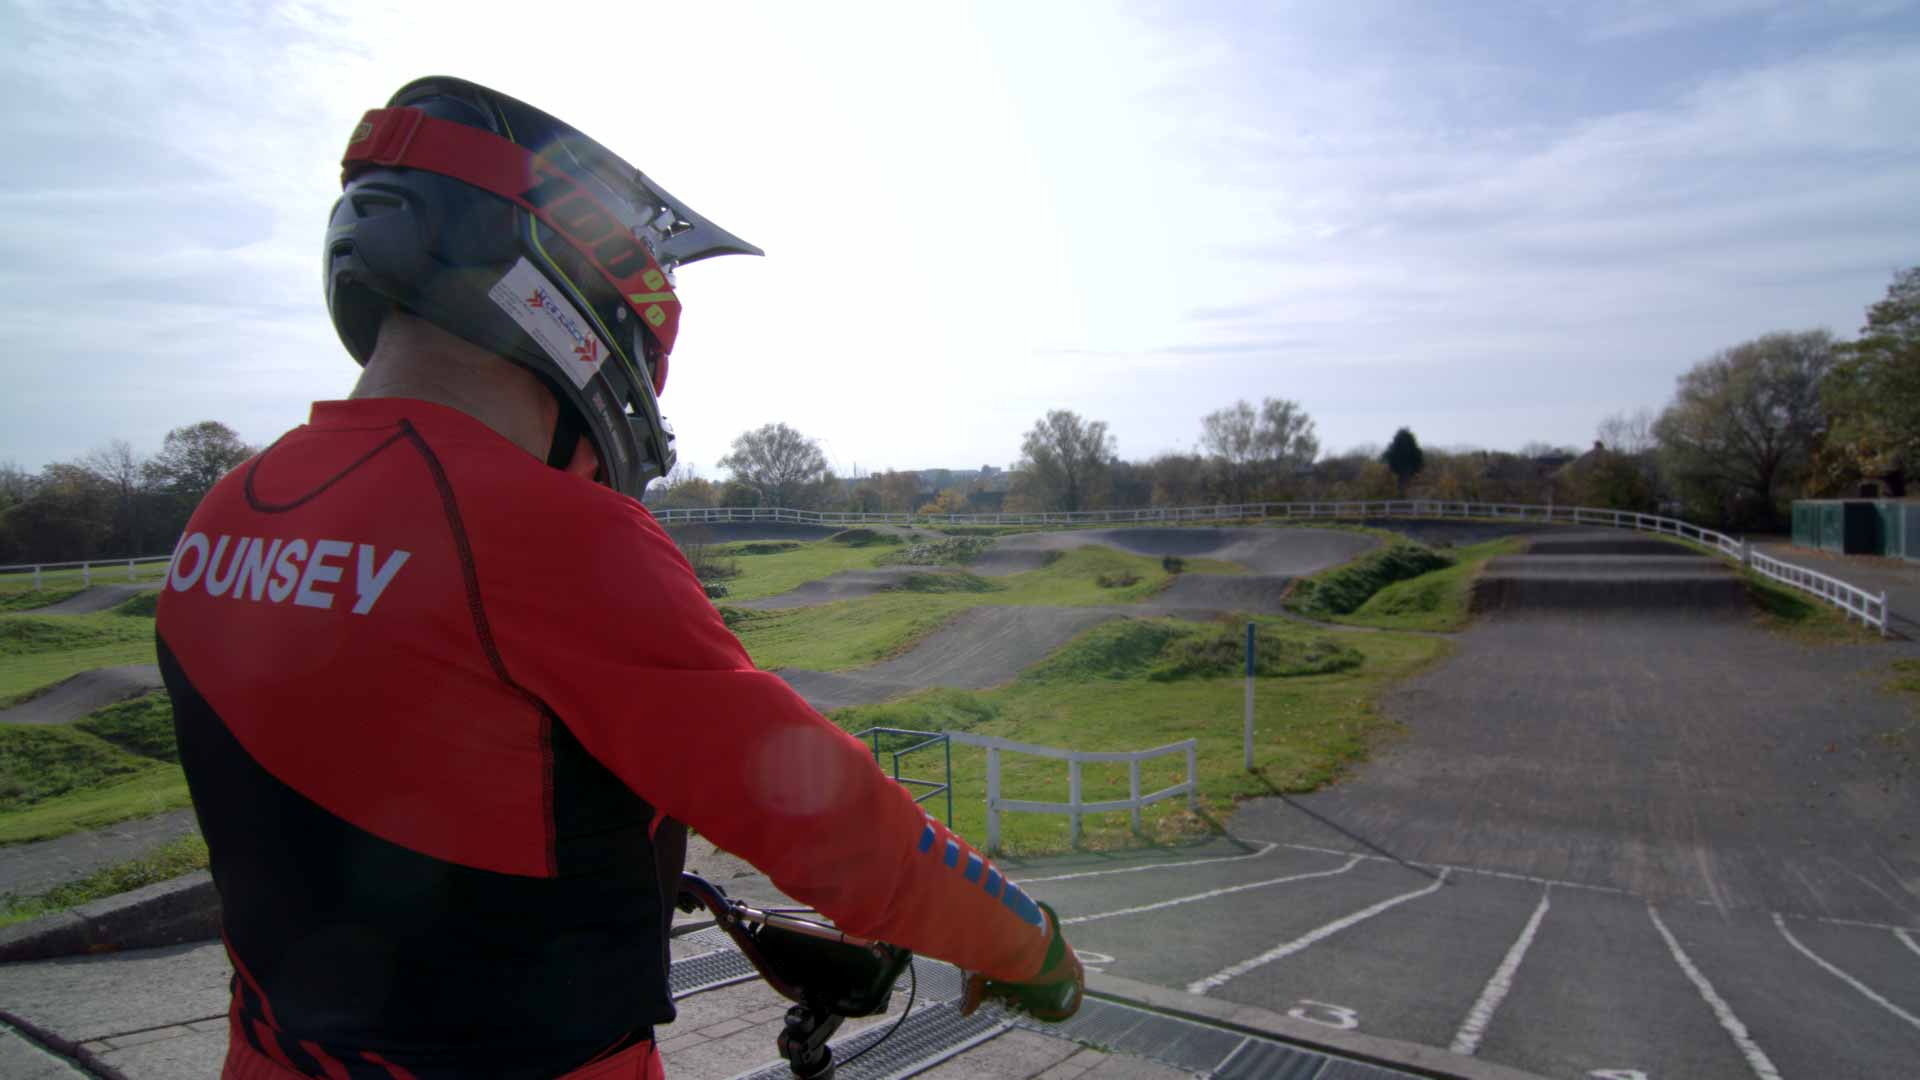 Paul Mounsey sat on his BMX at the start of a race track in full race gear.